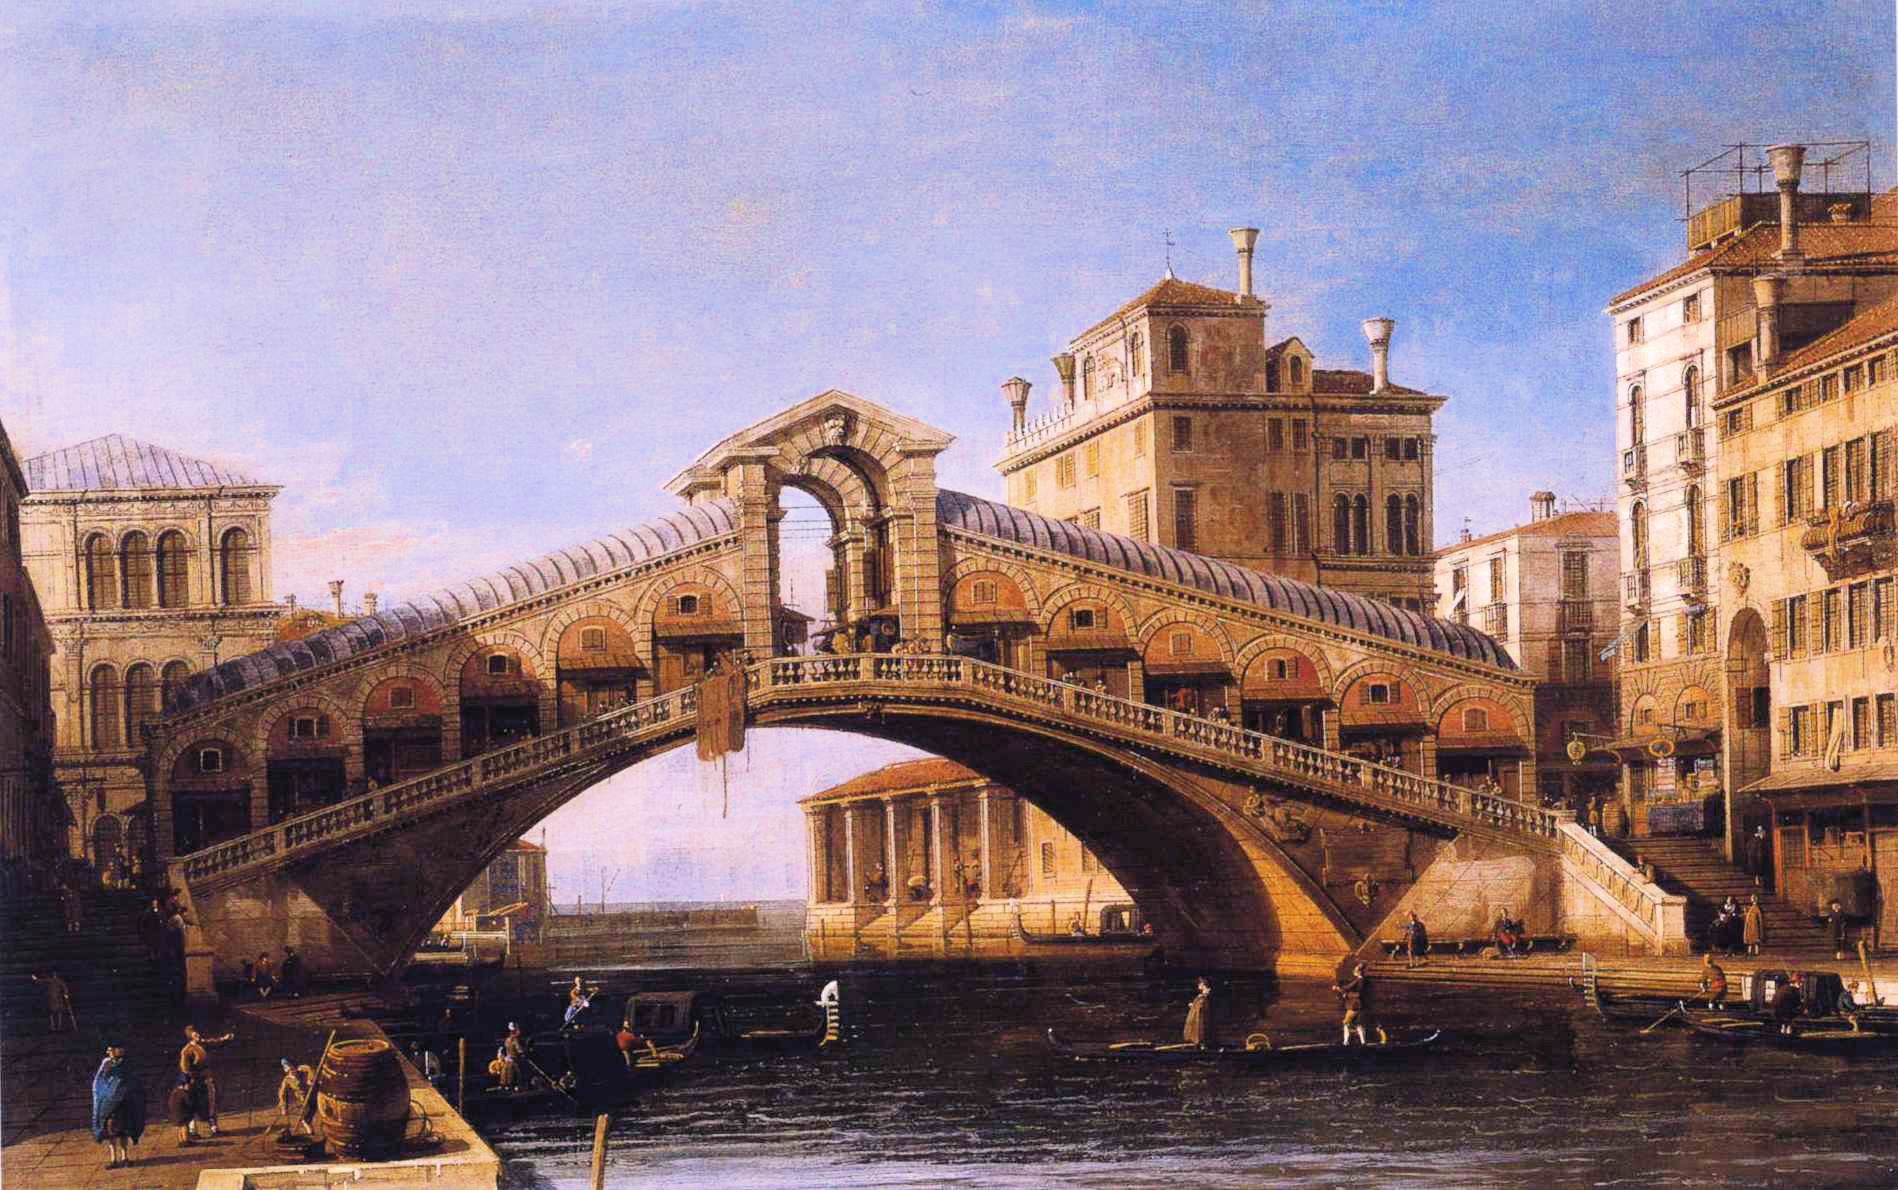 http://upload.wikimedia.org/wikipedia/commons/6/6a/Canaletto_-_Capriccio_of_the_Rialto_Bridge_with_the_Lagoon_Beyond.JPG